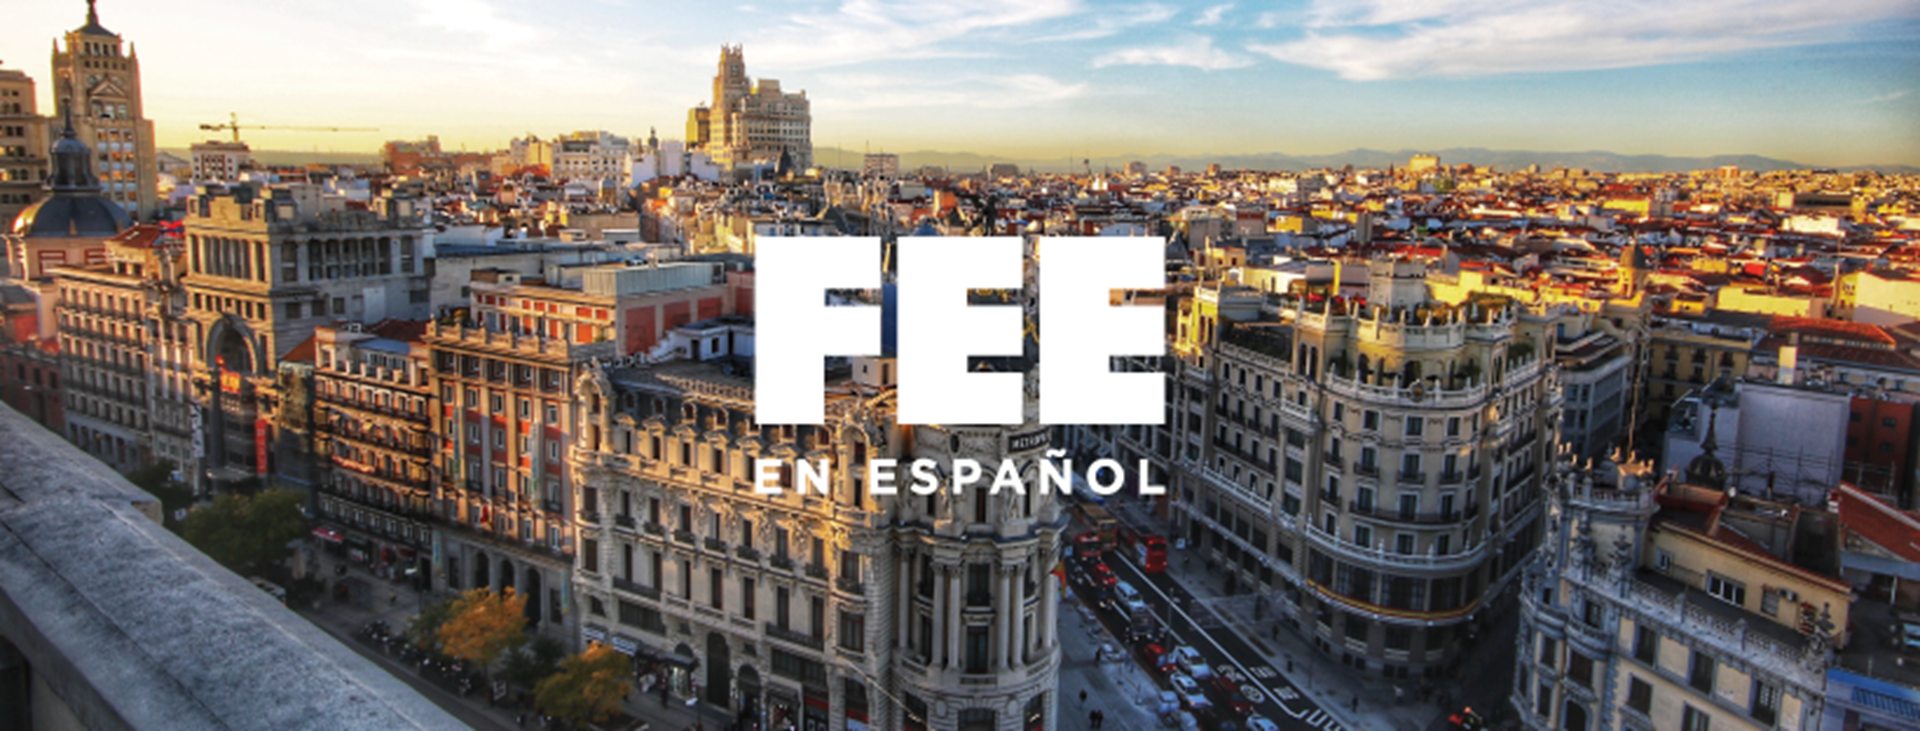 fee-espanol-coverphoto.png